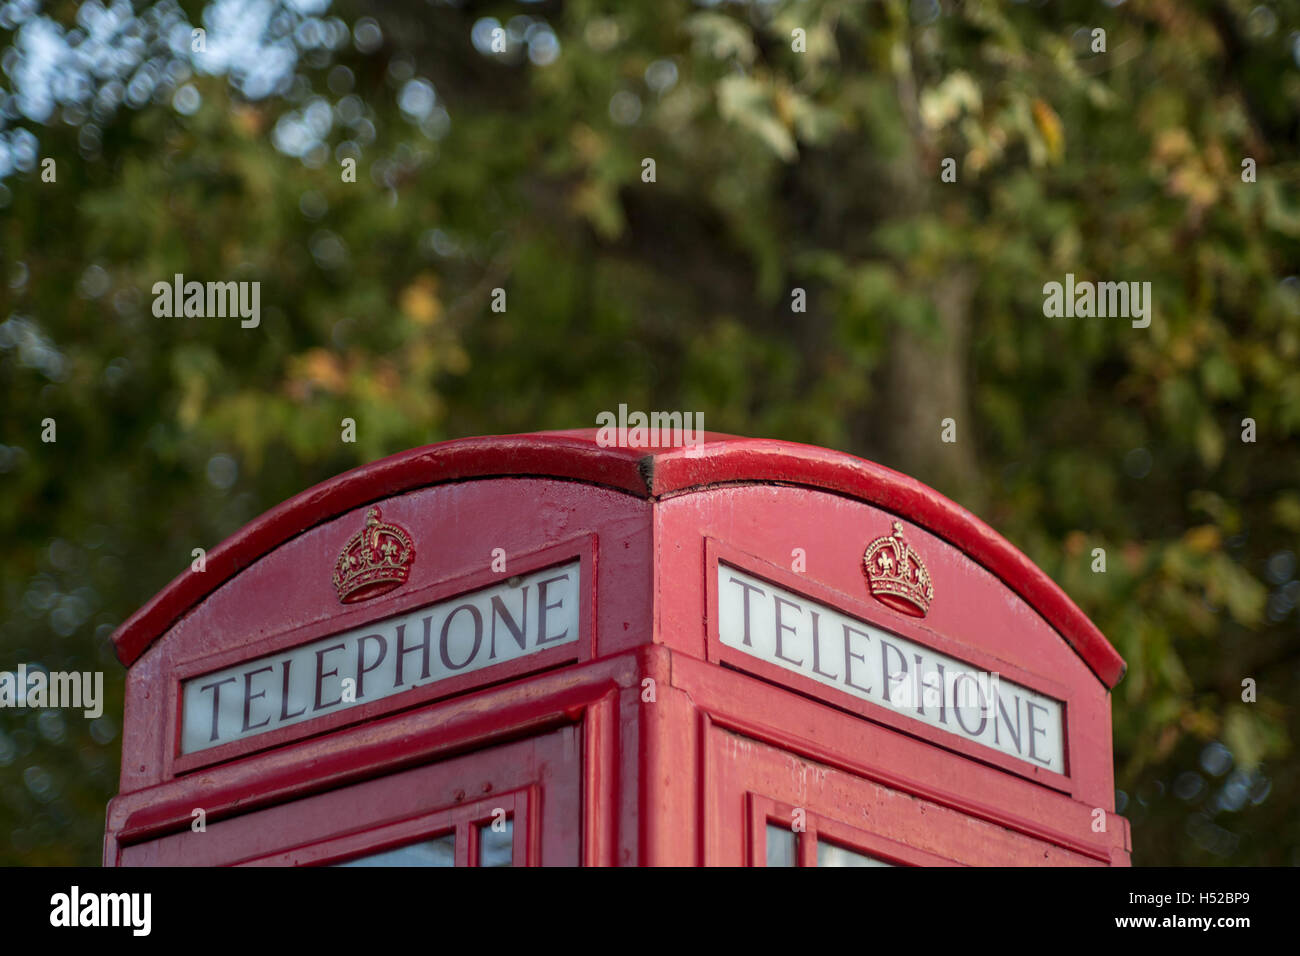 Common red British telephone box in London, UK. - Stock Image